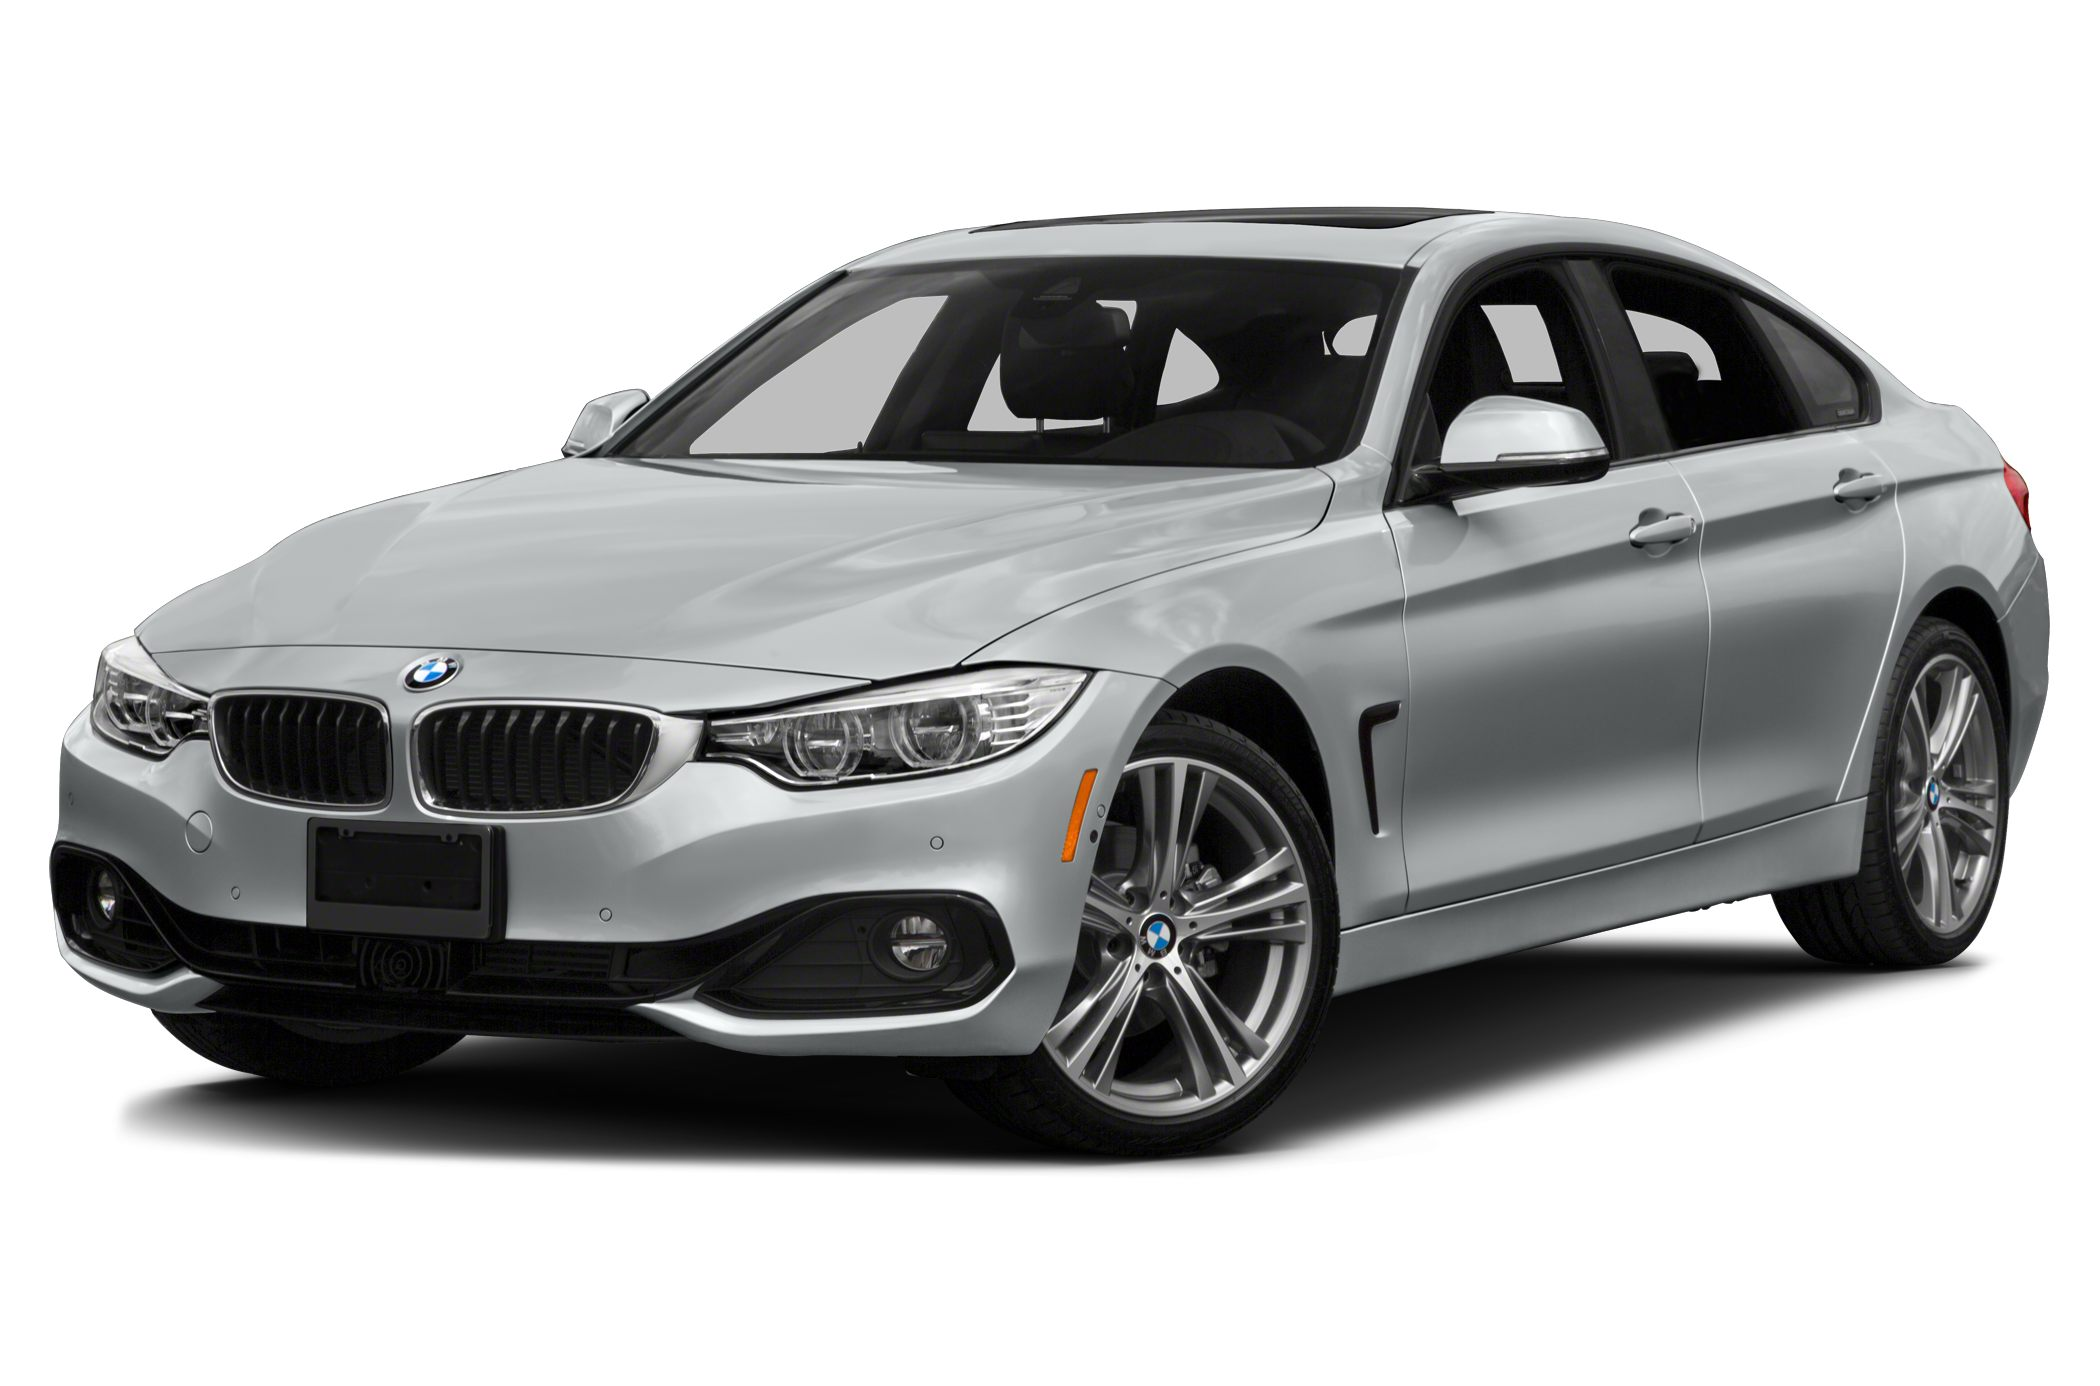 2015 BMW 428 Gran Coupe I XDrive Hatchback for sale in Mechanicsburg for $52,370 with 12 miles.